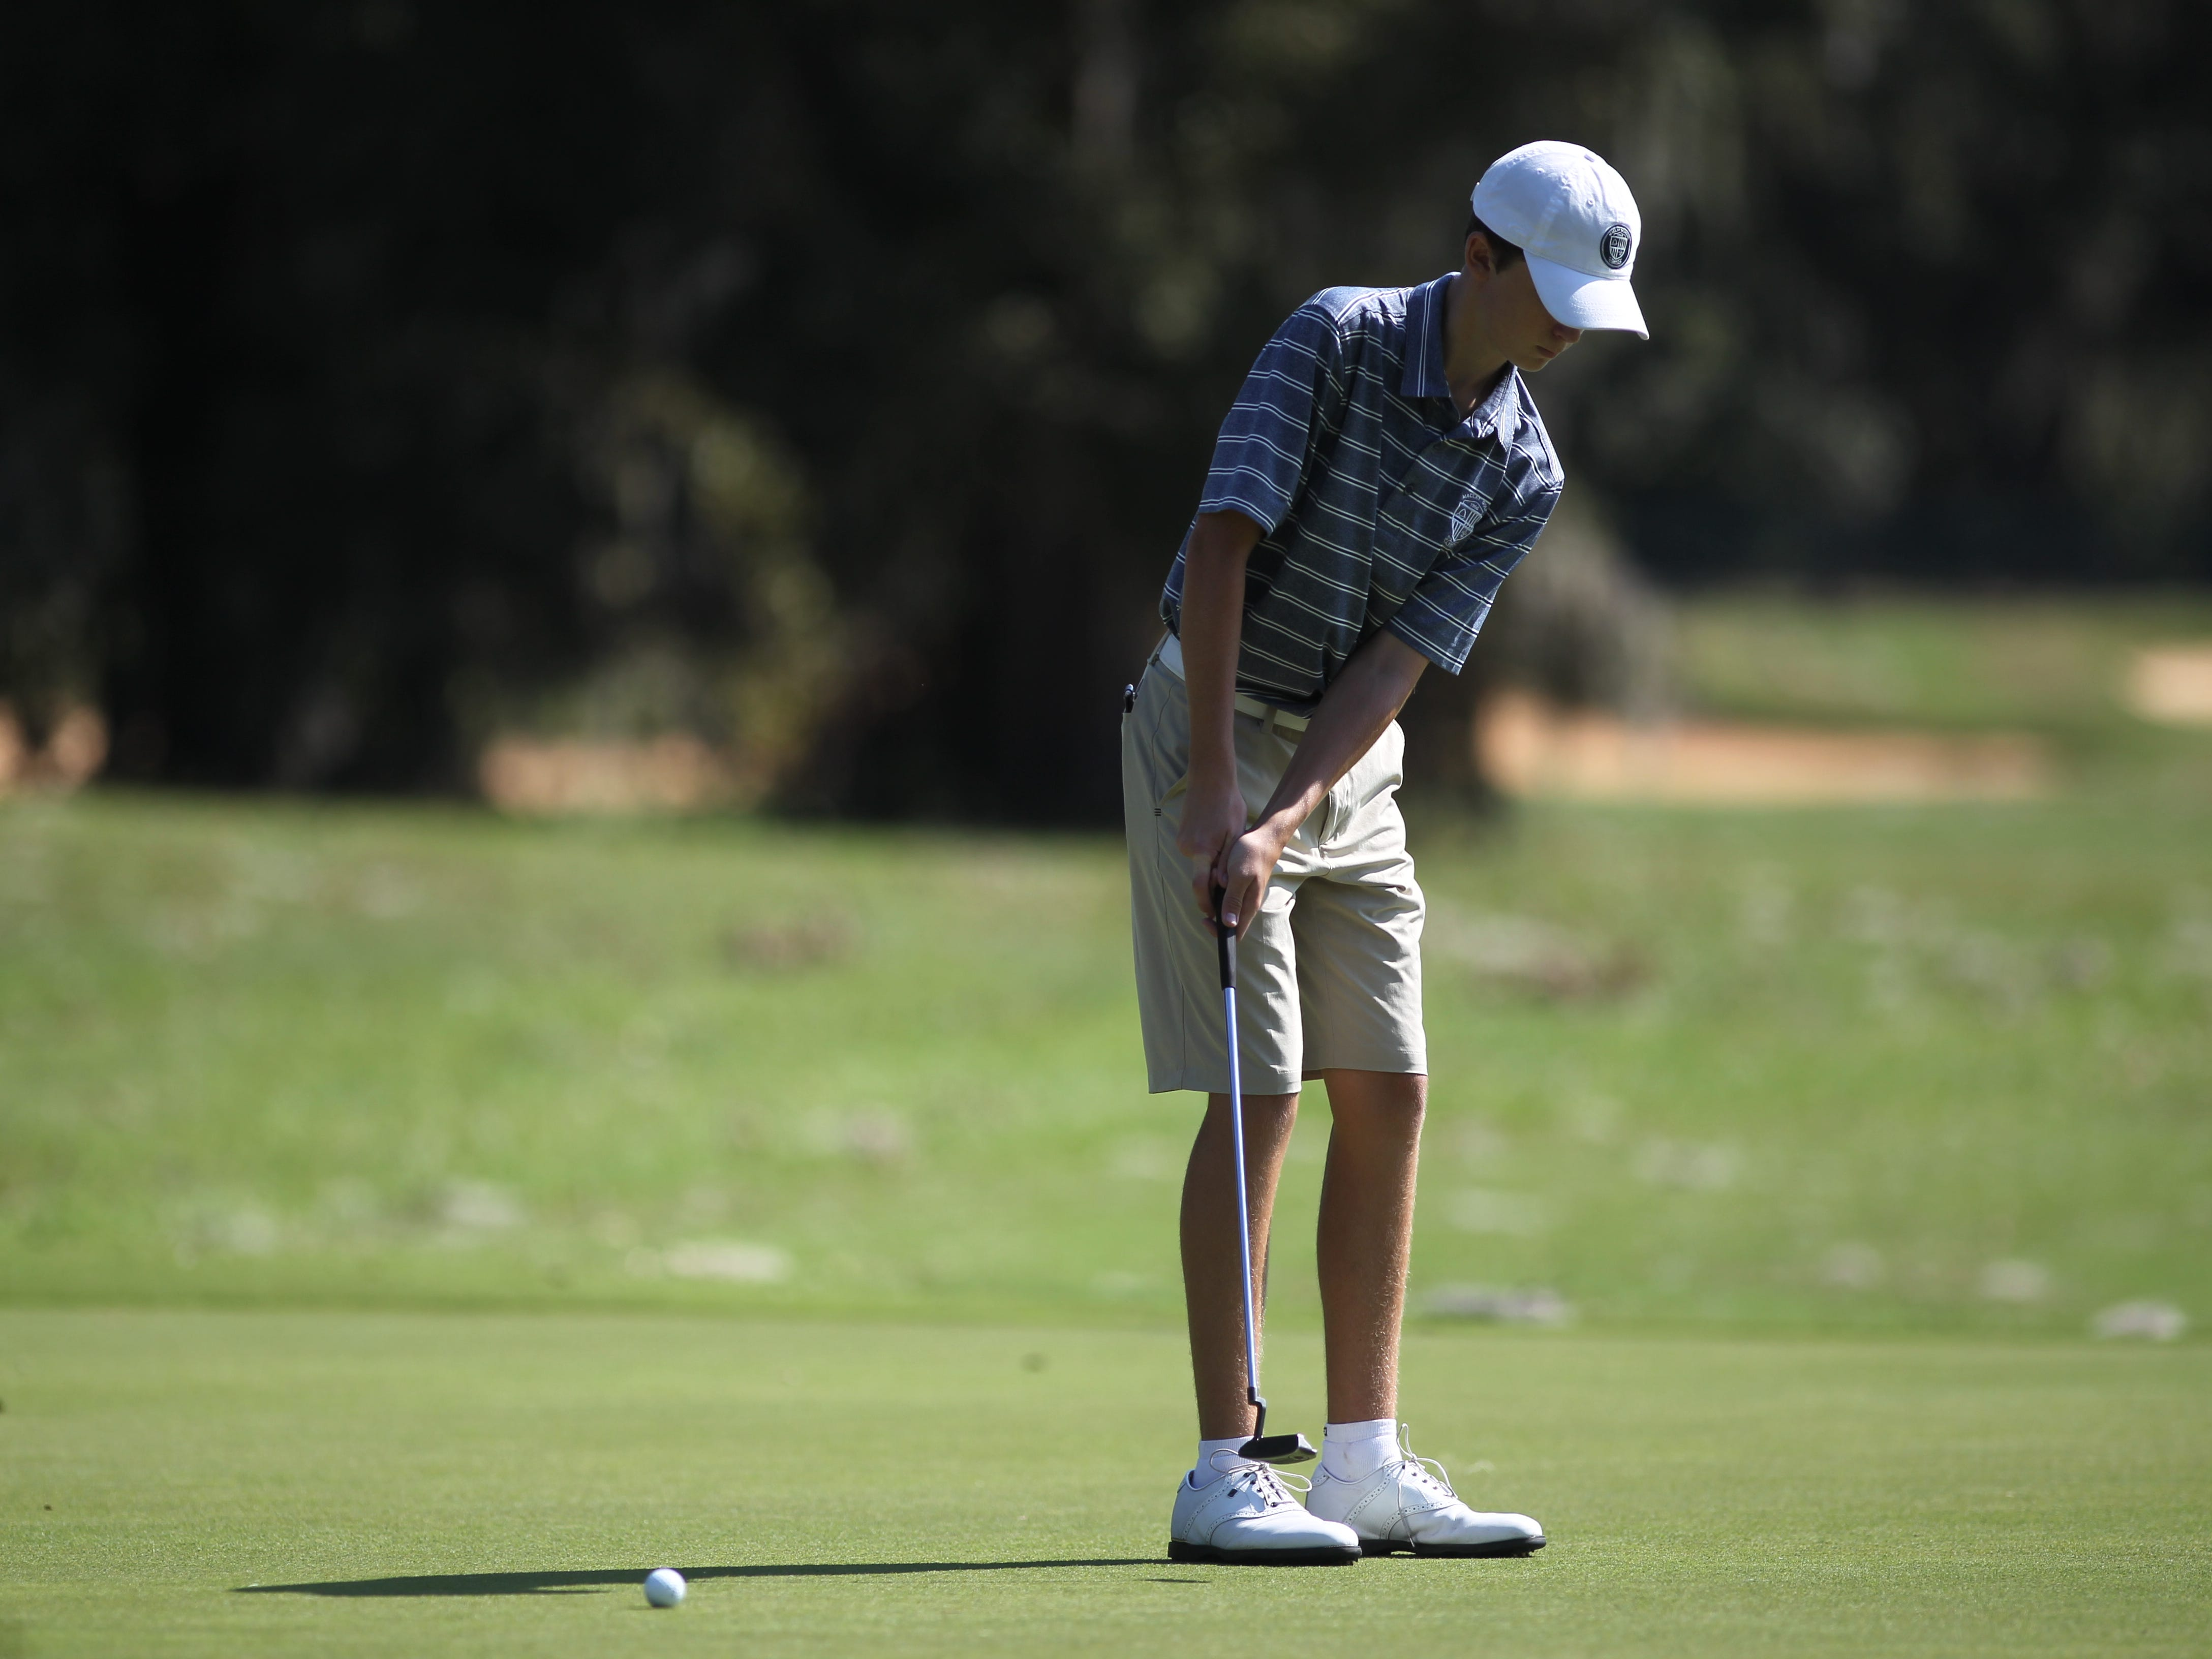 Maclay's Patrick McCann plays during the District 1-1A boys and girls golf tournaments at Southwood Golf Club.